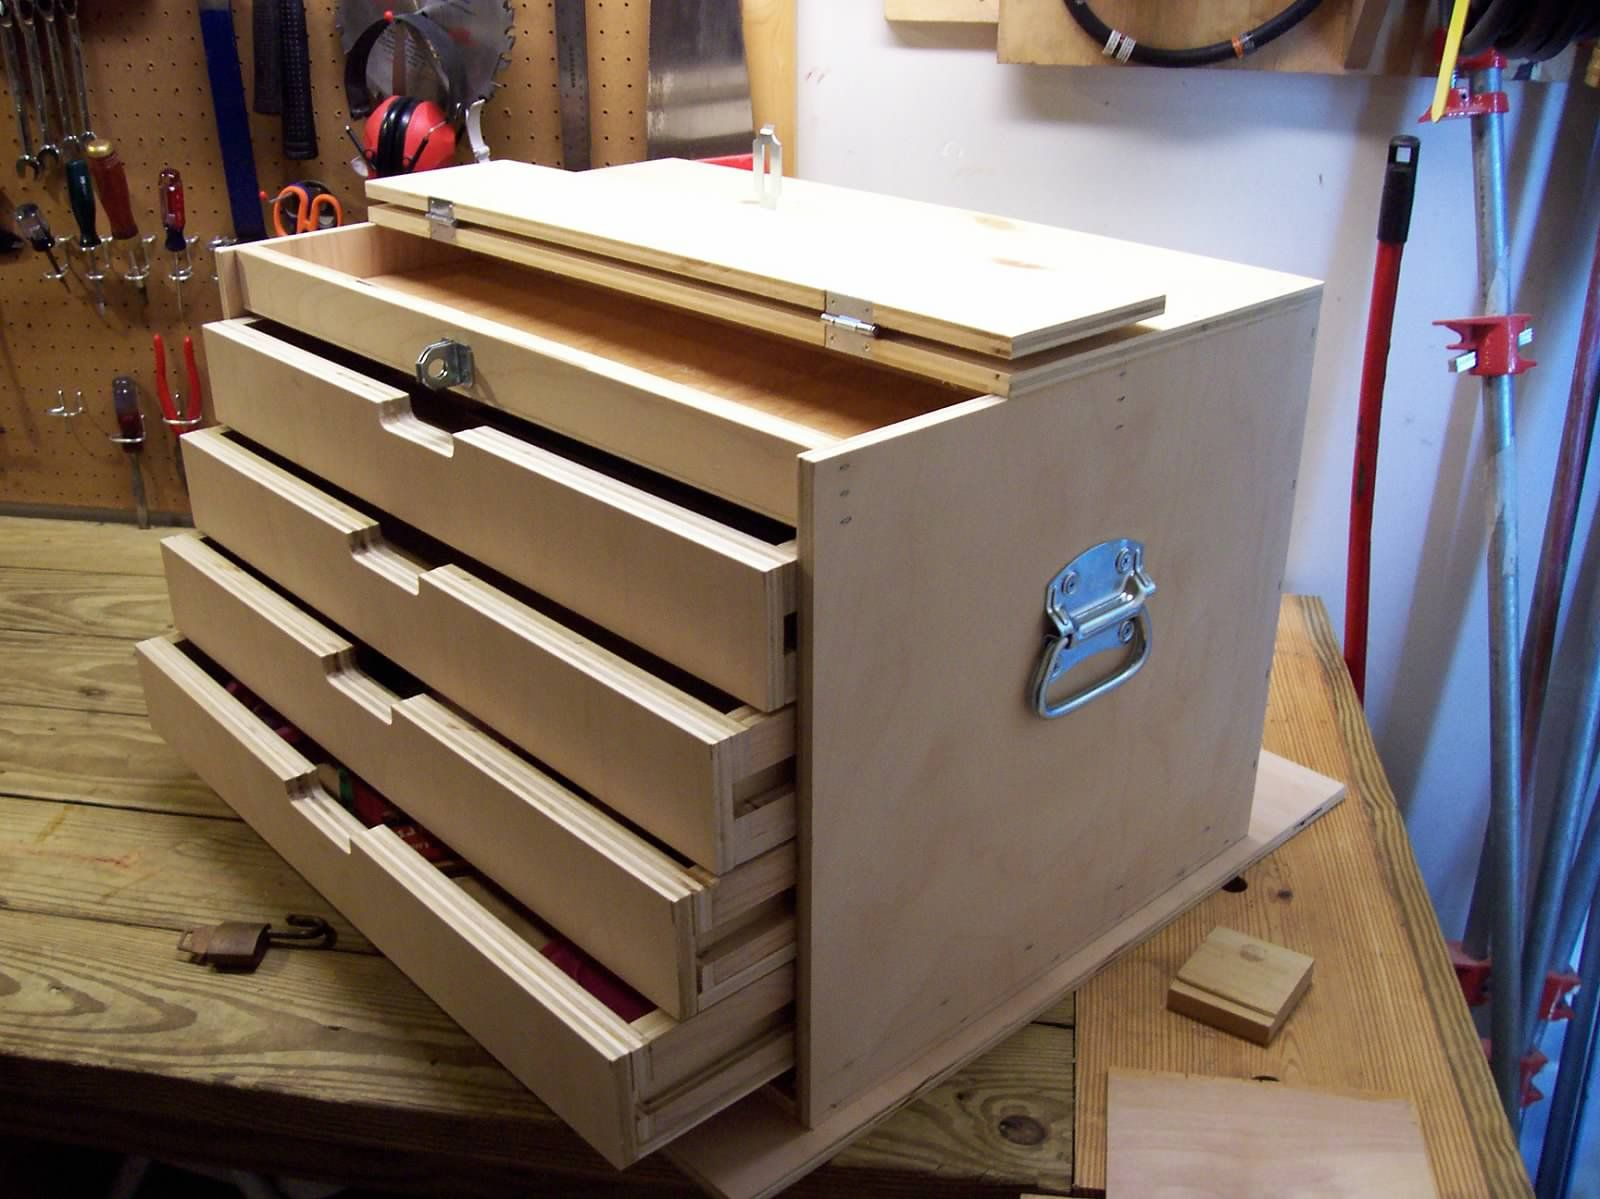 How to build a wood tool cabinet woodworking pinterest tool cabinets wood tools and - Wood cabinet design software ...